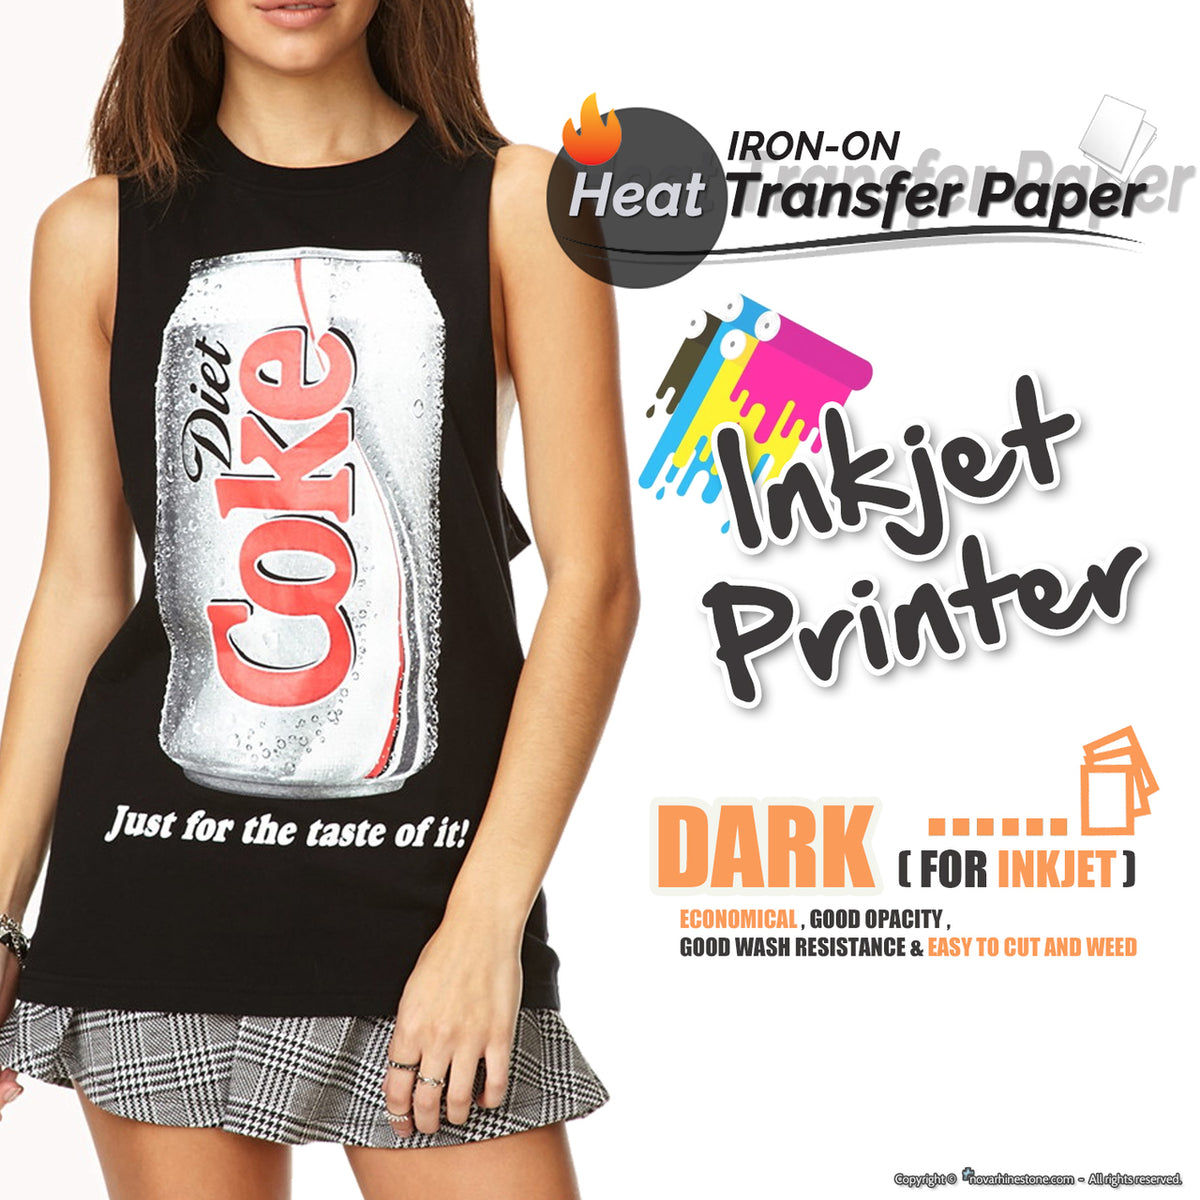 Witty image for inkjet printable htv